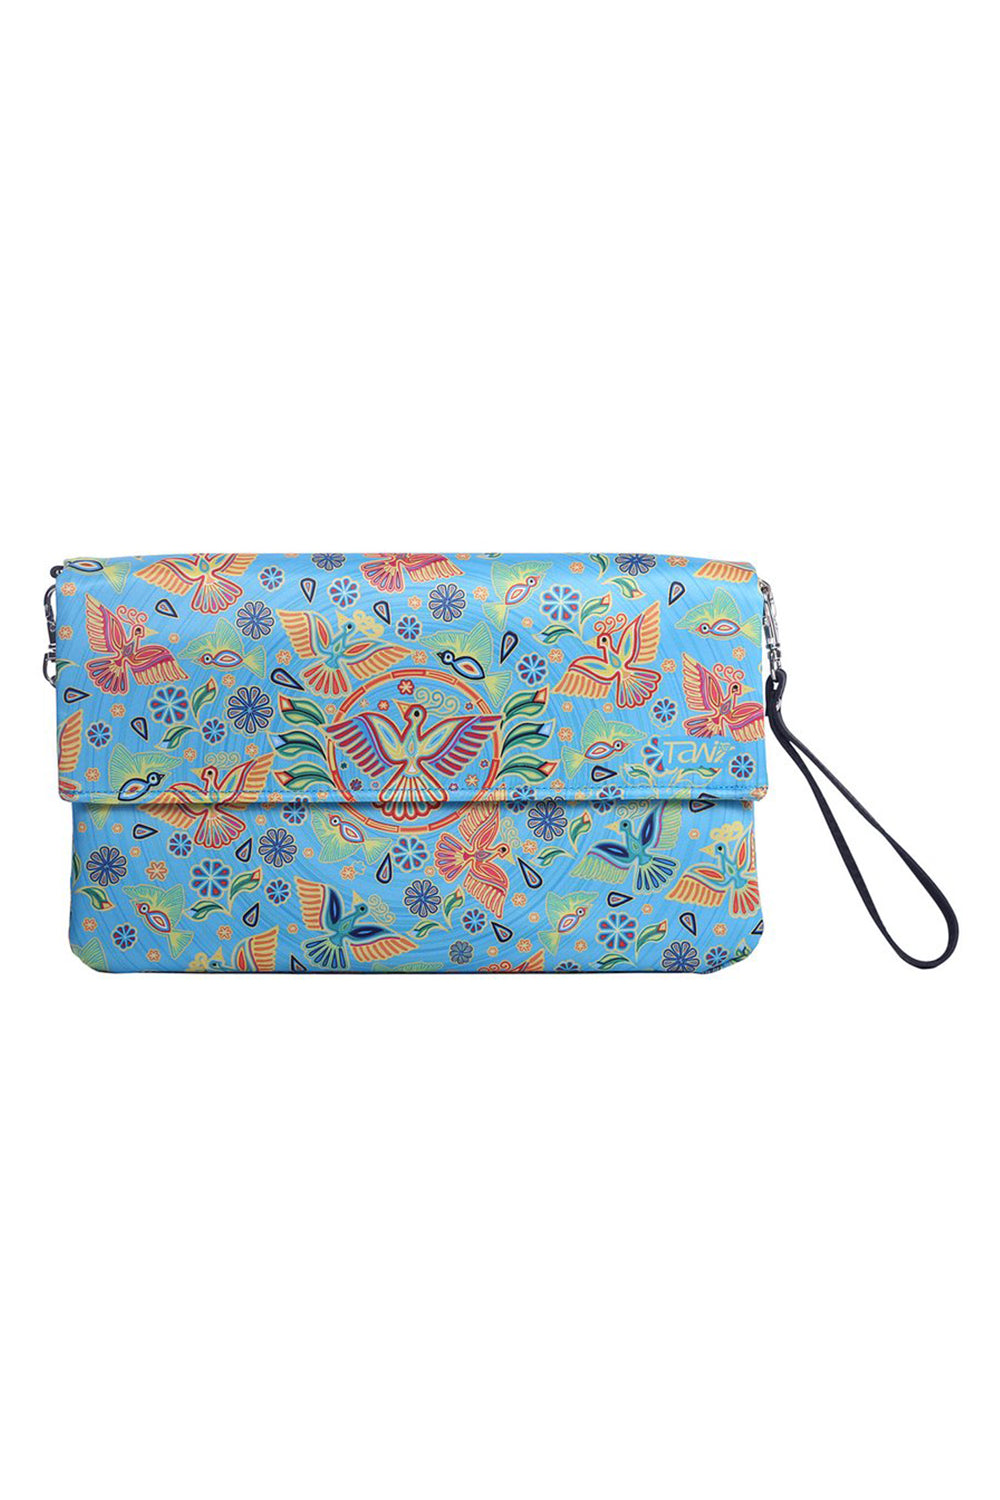 BAG TULUM TEXTIL HUICHOL (Blue) - to Women - ¡Ay Güey! USA